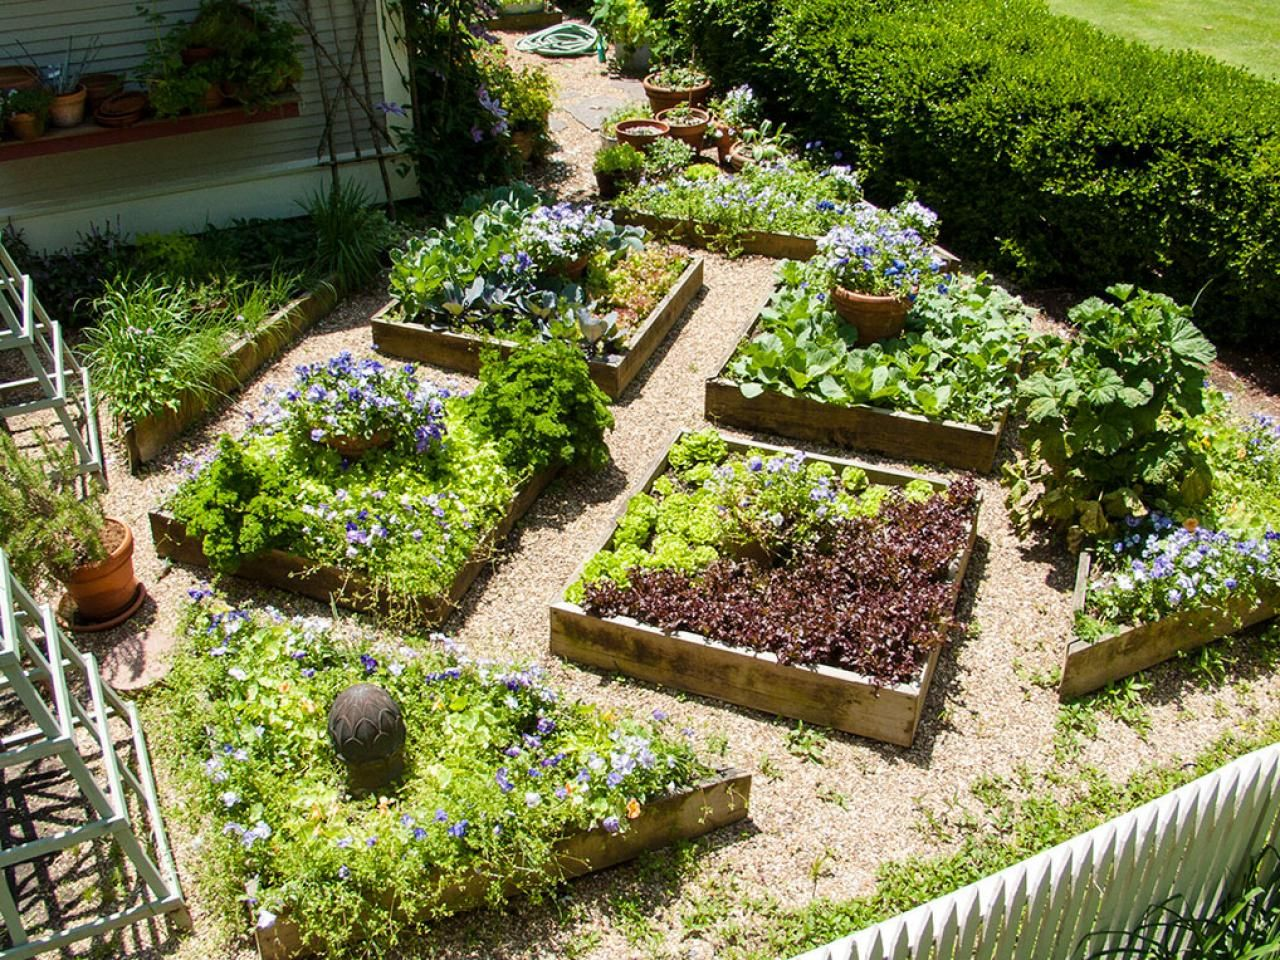 Edible Landscaping: Growing Your Own Food | Outdoor spaces ...